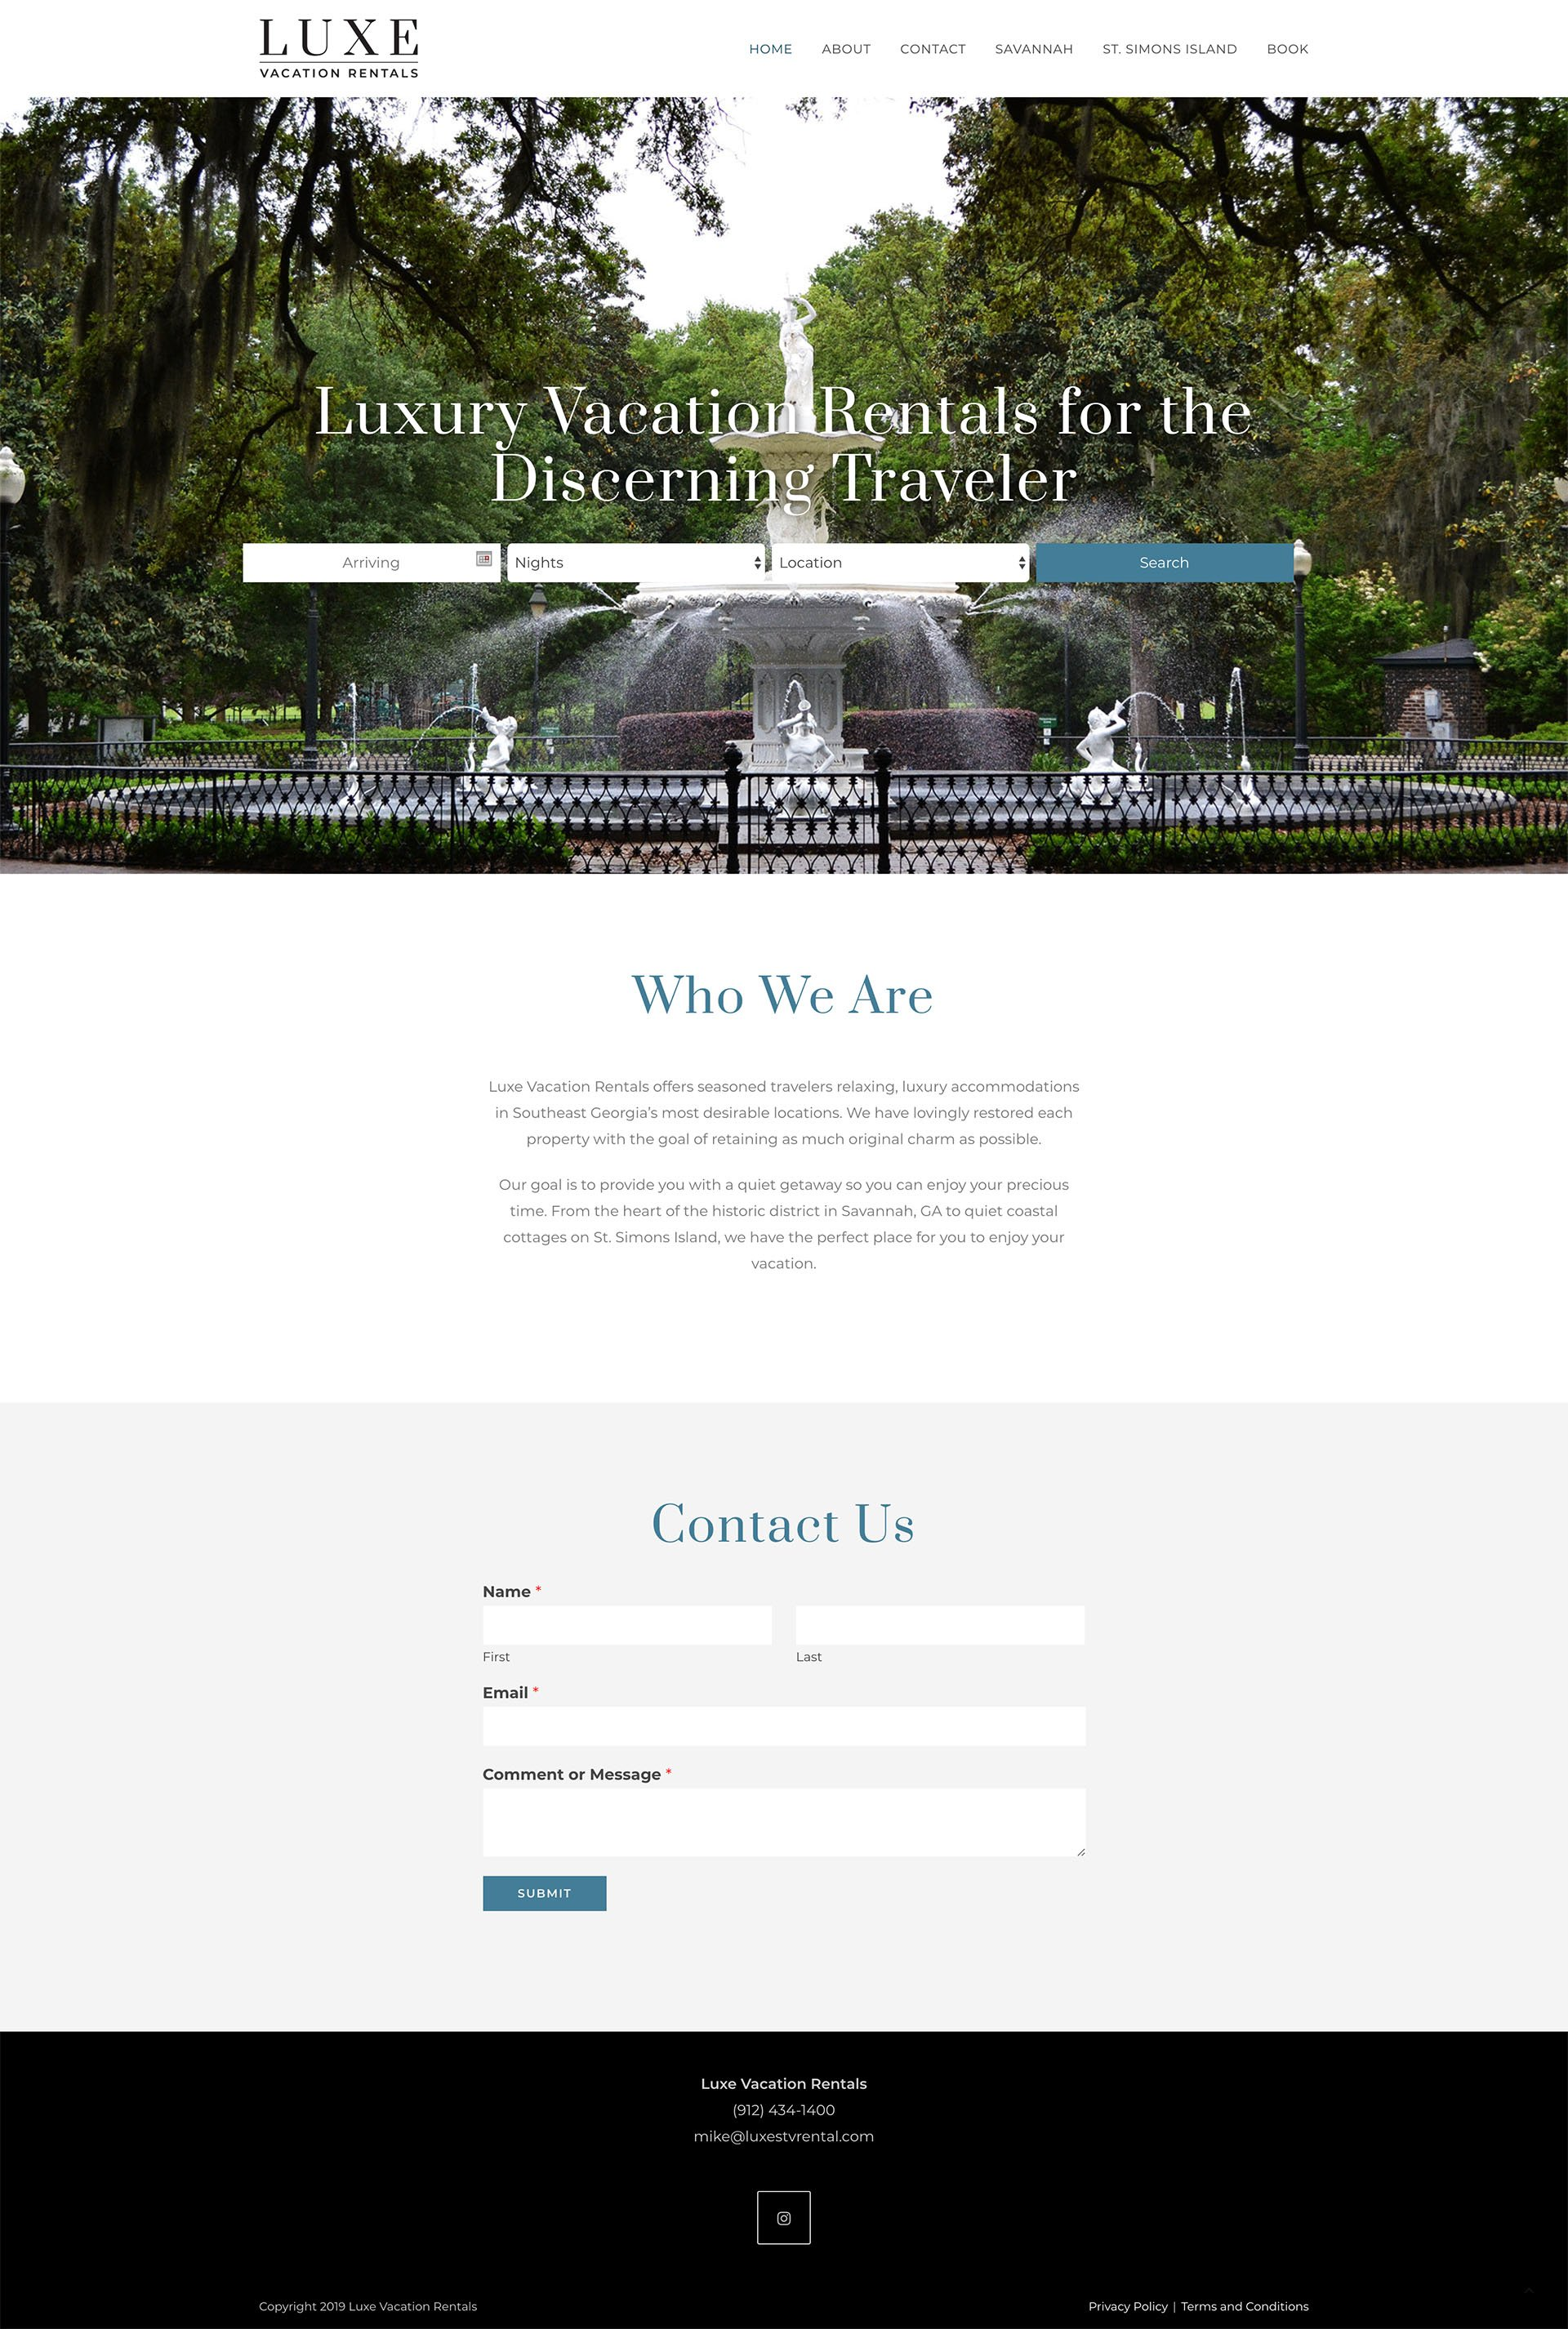 Luxe Vacation Rentals website design - Lauren Dingus Creative - Savannah, GA